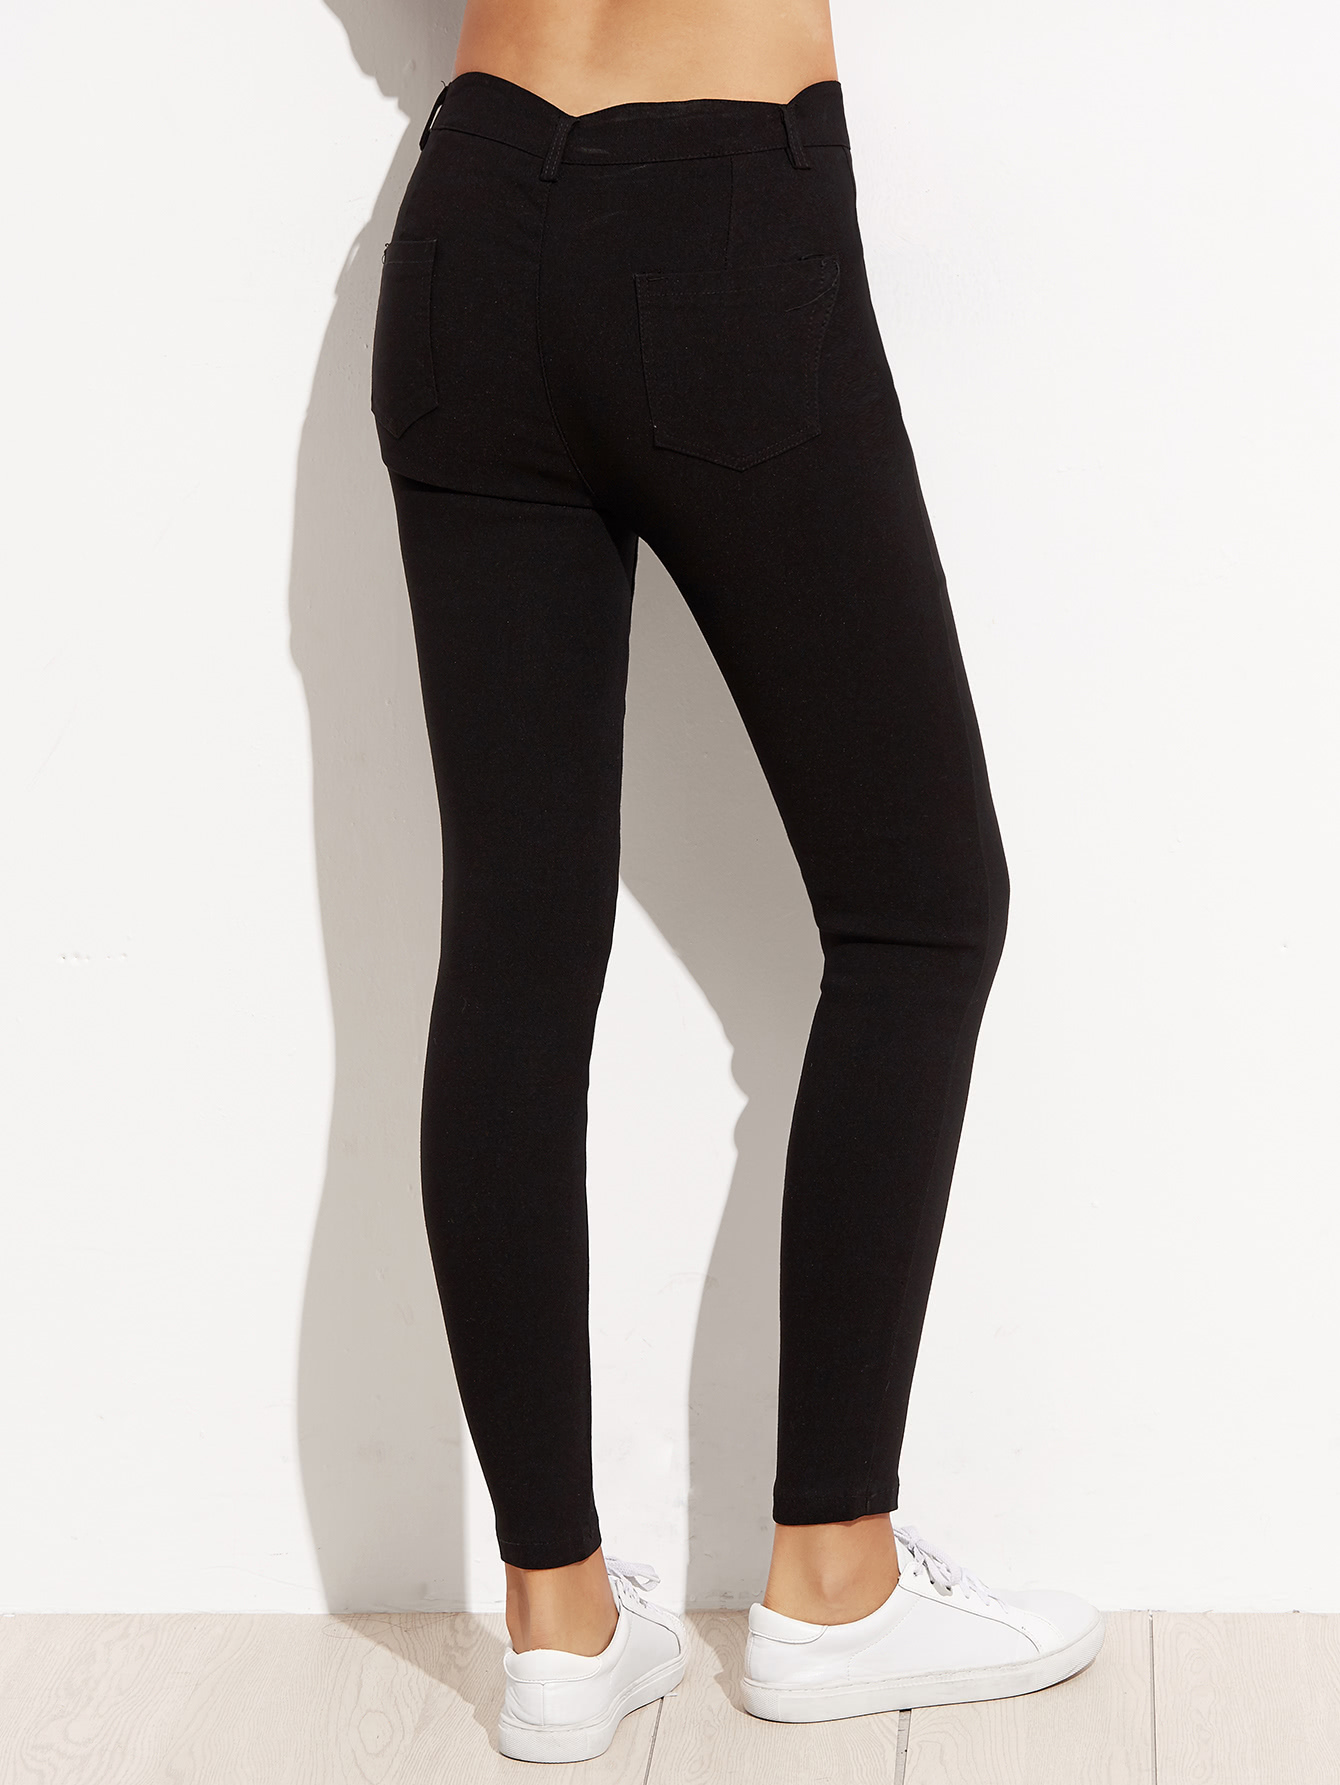 Love these, but as regular, not ankle pants. I'm 5 ft tall, lbs and always have to hem or cuff my jeans. The womens 25 fit perfectly when the cuff is rolled down.